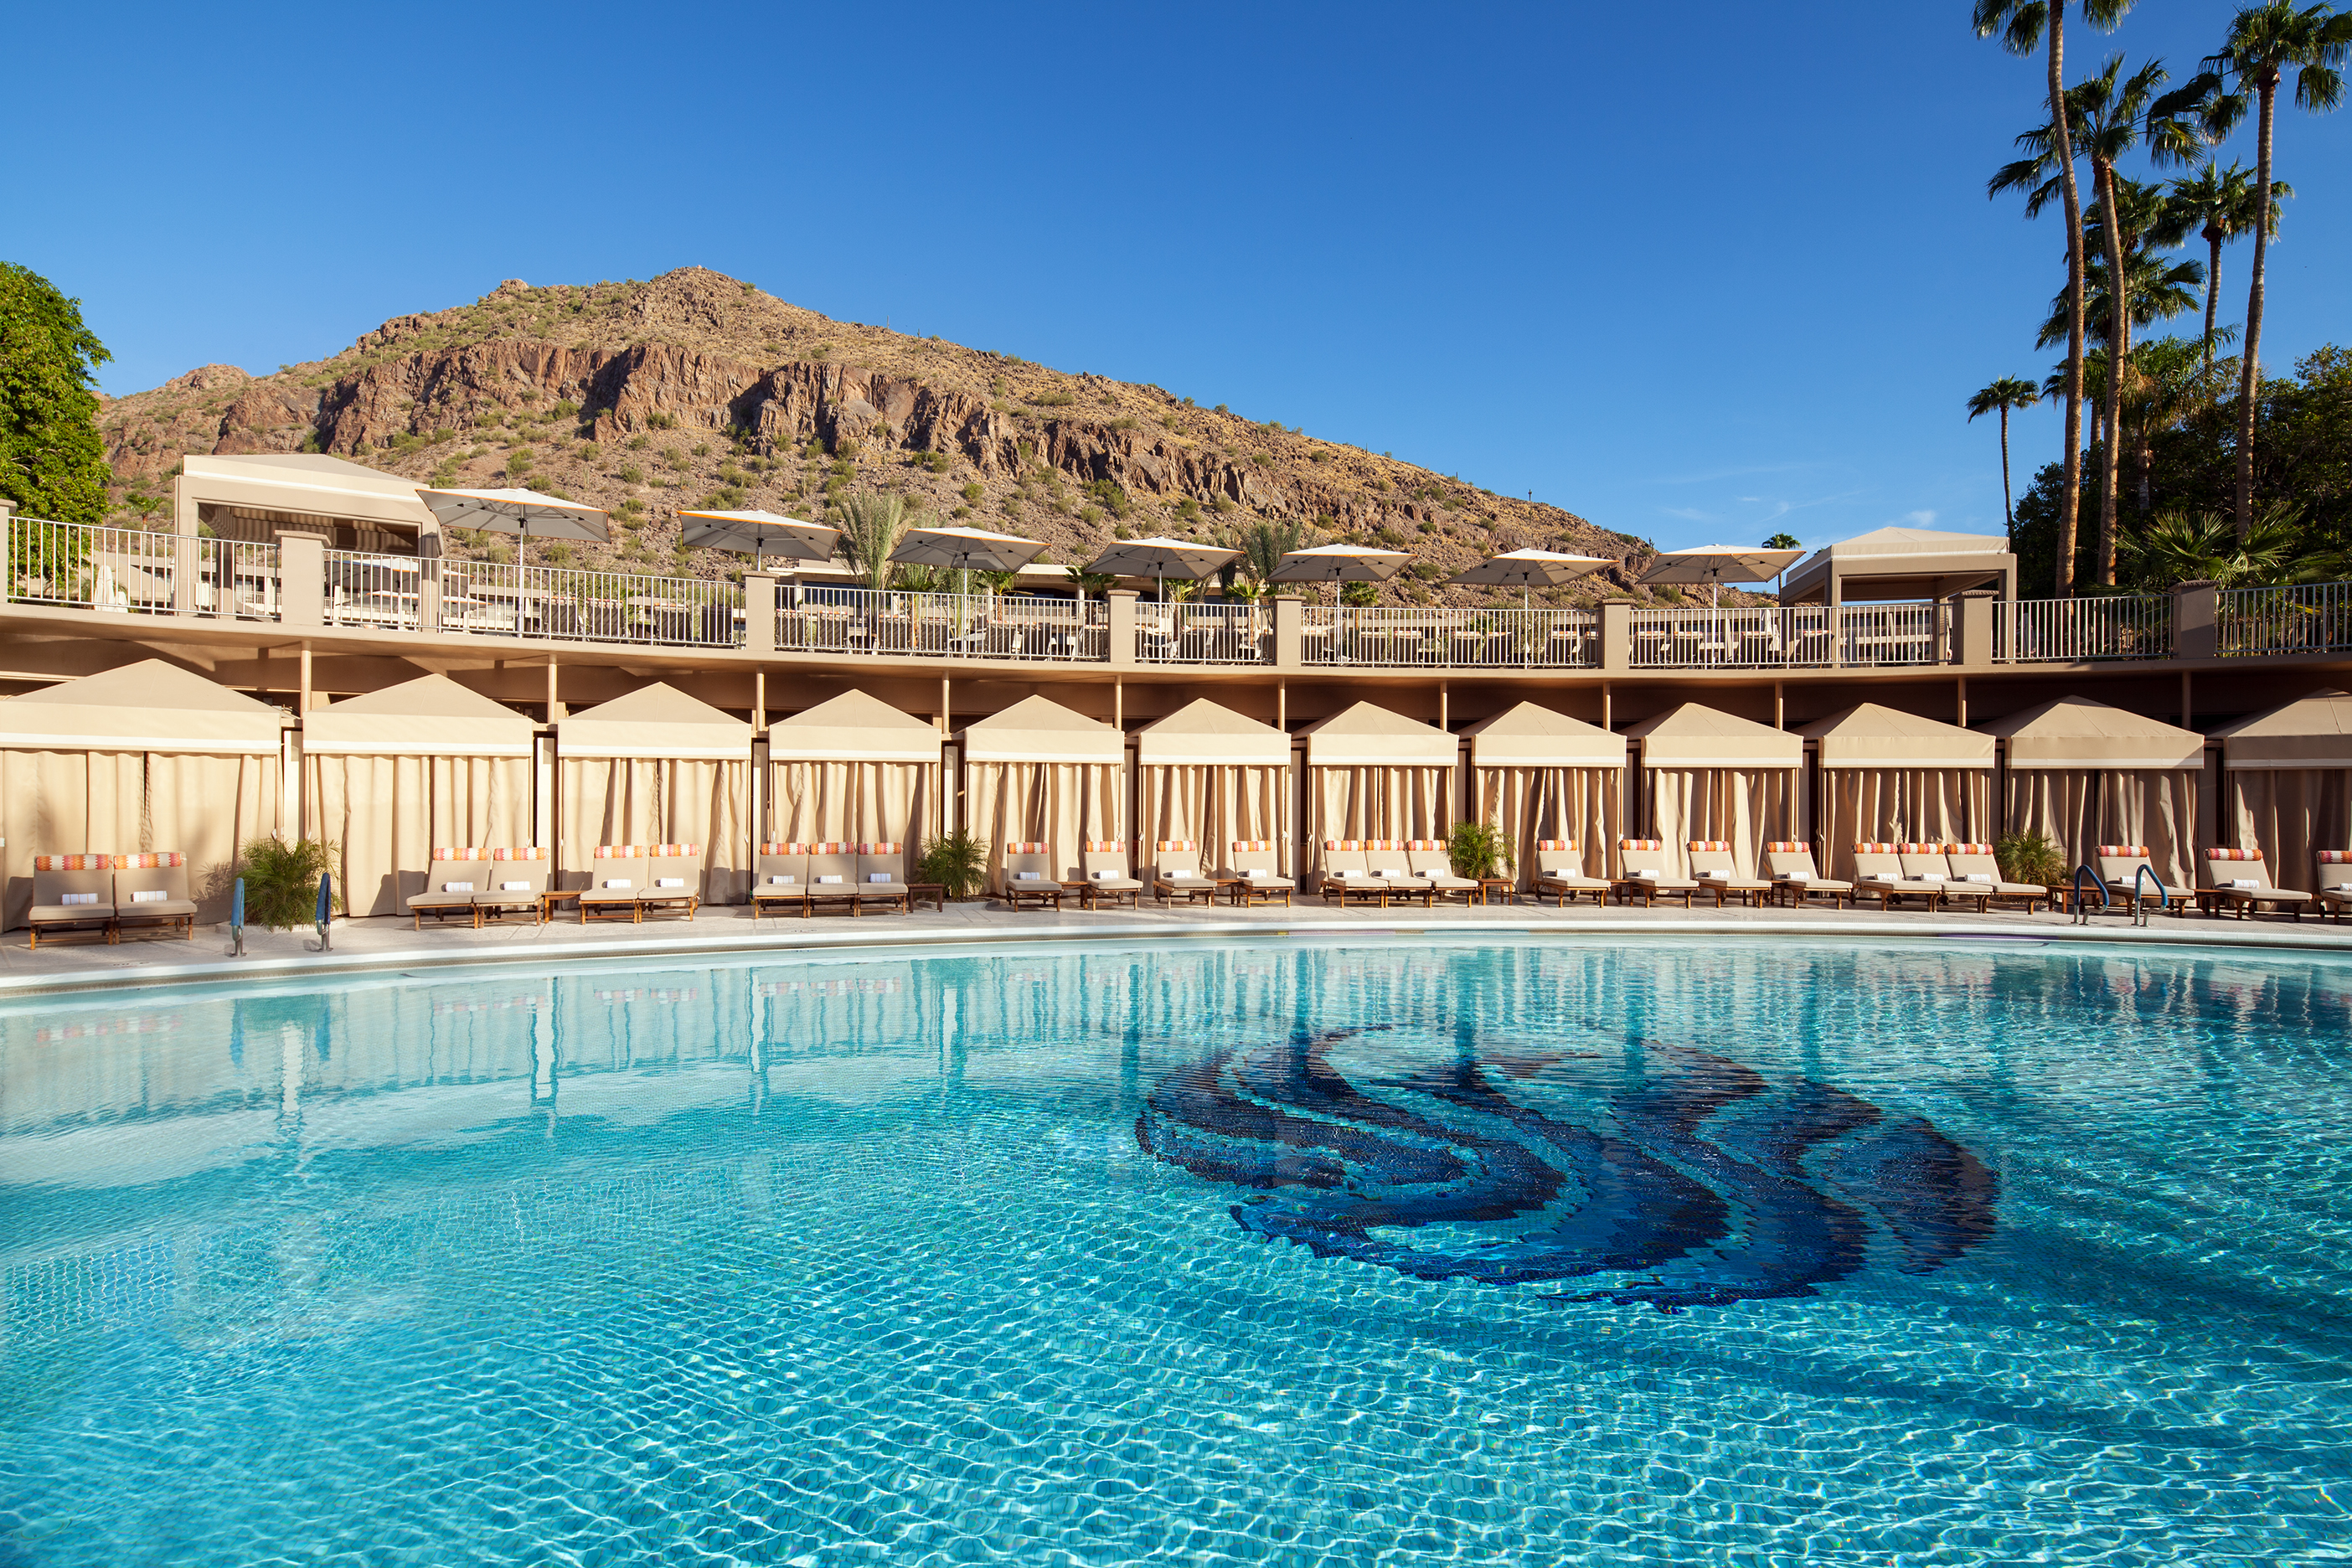 Best Pools In Scottsdale Official Travel Site For Scottsdale Arizona